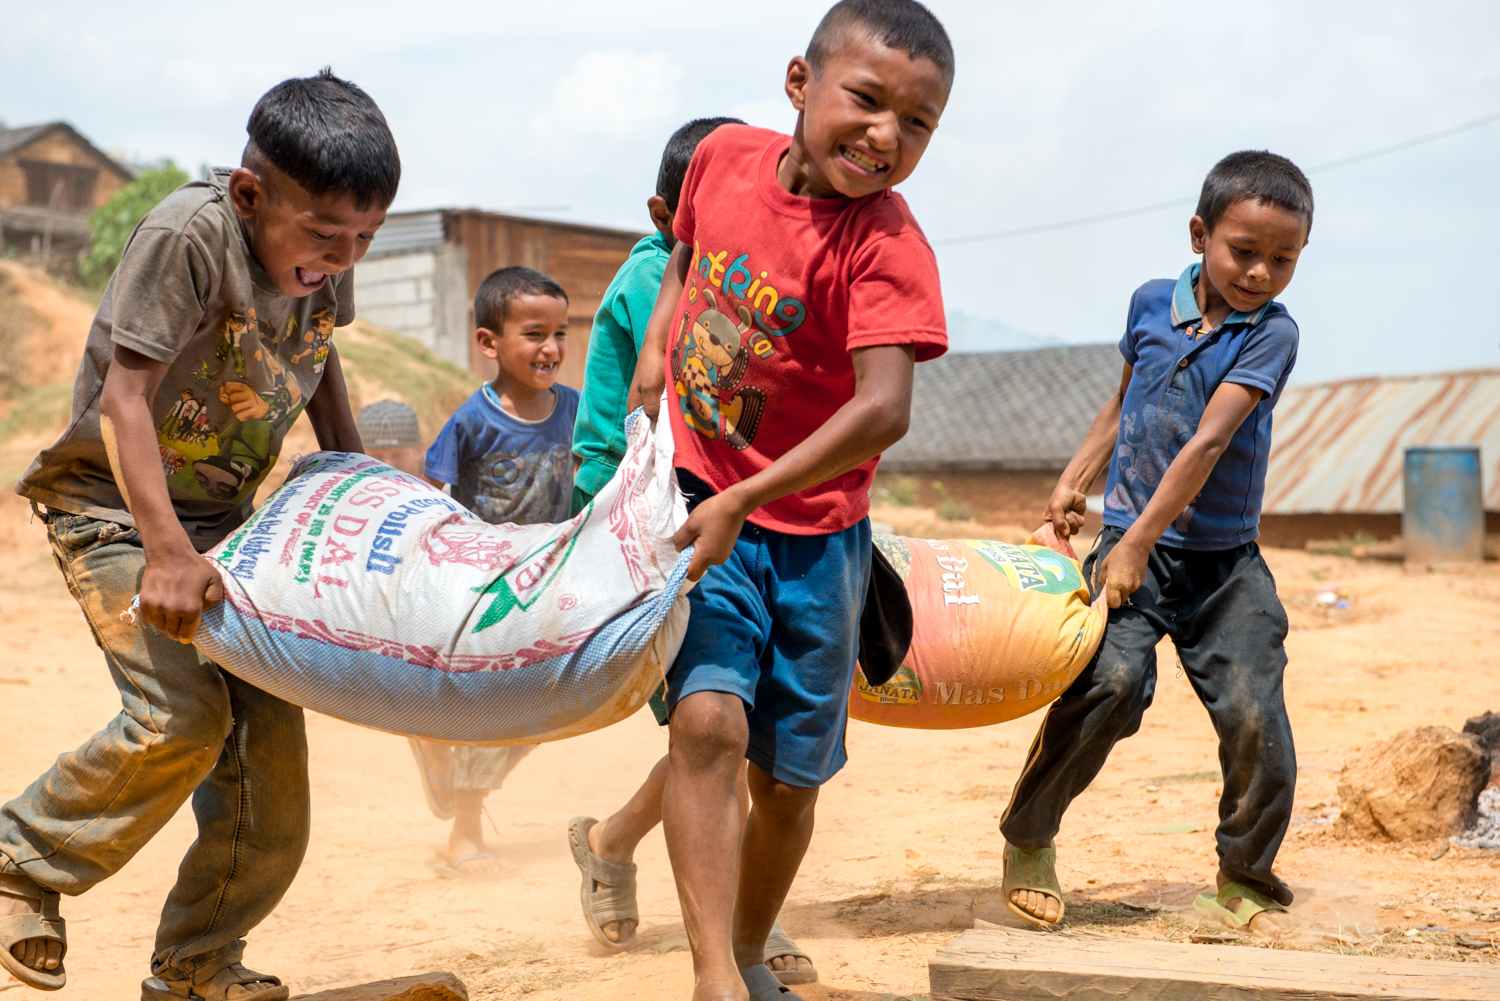 In times of crisis, children create an unlikely atmosphere of playfulness and resiliency. In Khari, Nepal the children insisted in helping us carry over 60 bags of 25kg of rice for the community of more than 200 families.